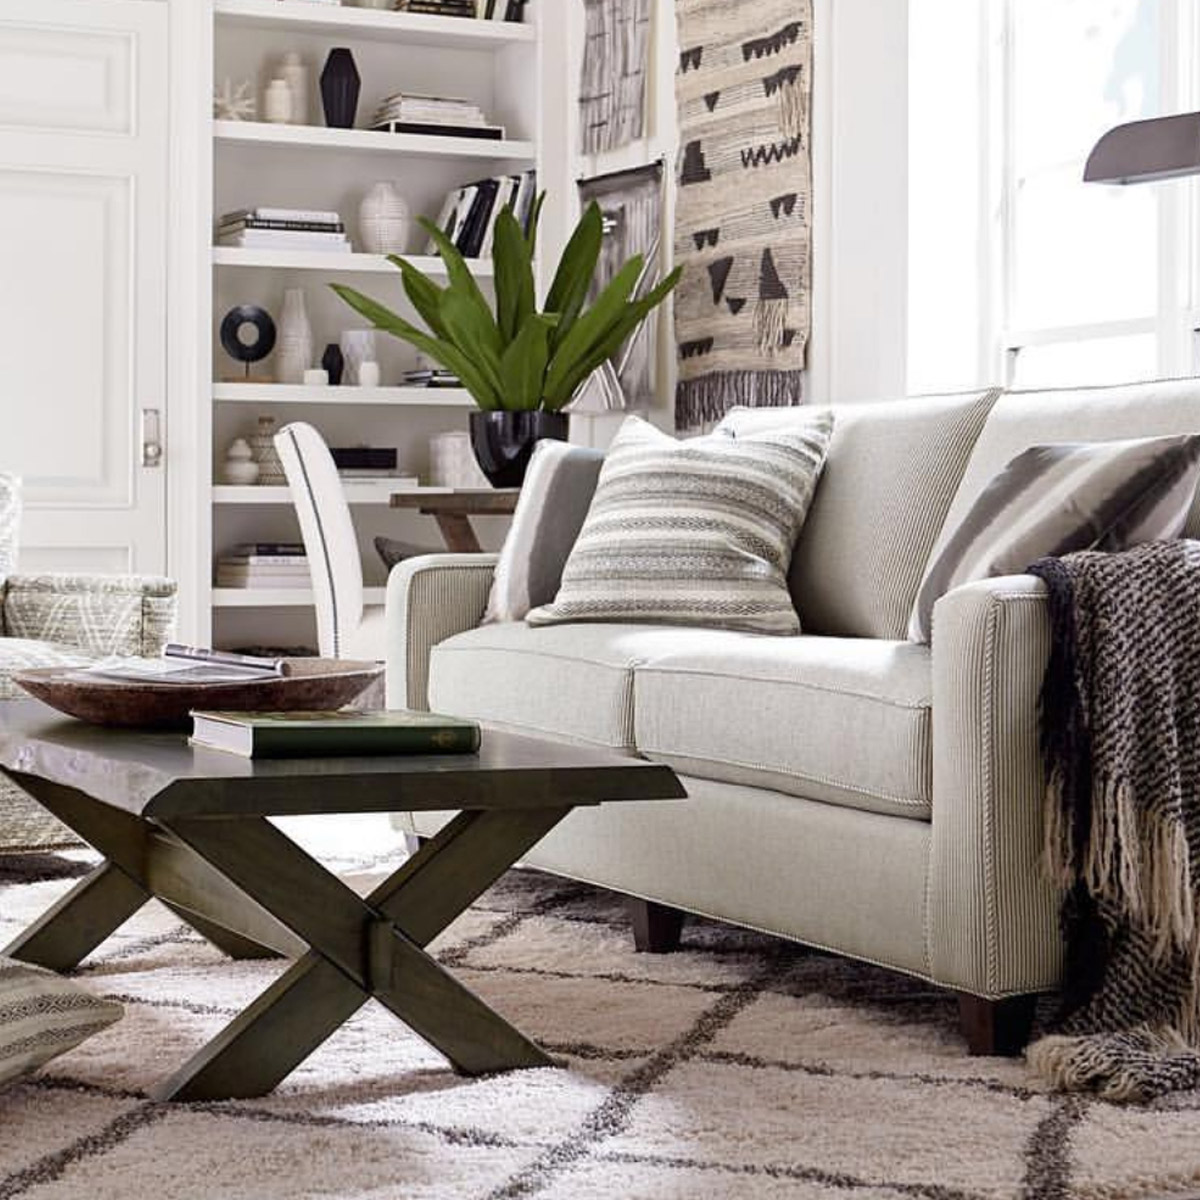 Decor Furniture Furniture Home Decor Accents Interiors